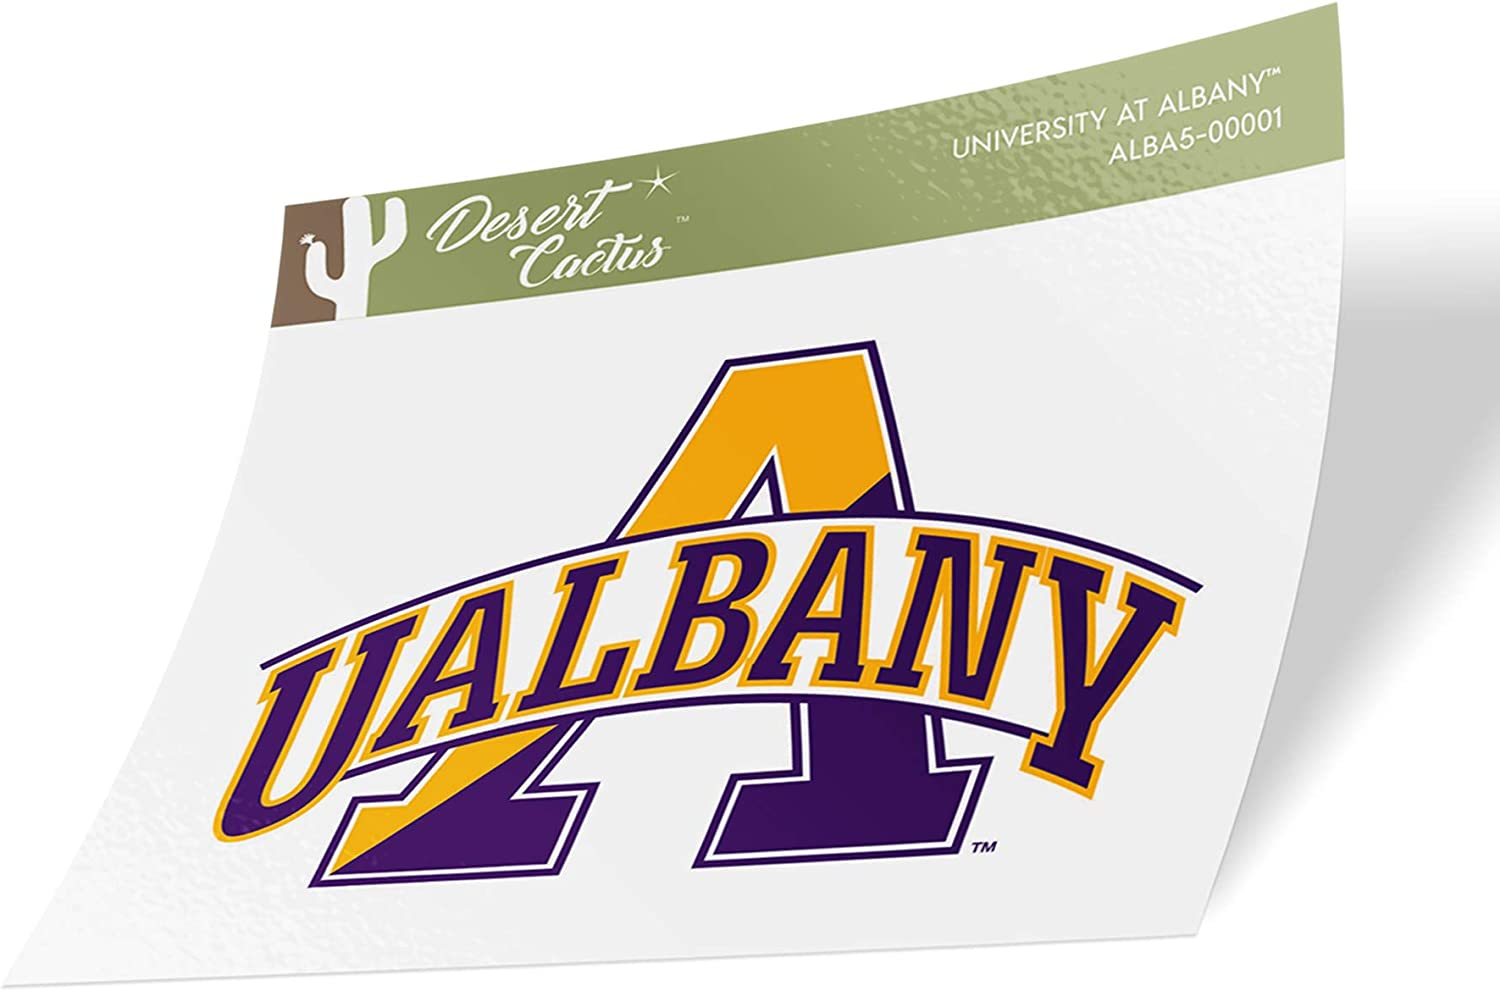 University at Albany UALBANY Great Danes SUNY NCAA Vinyl Decal Laptop Water Bottle Car Scrapbook (Sticker - 00001)